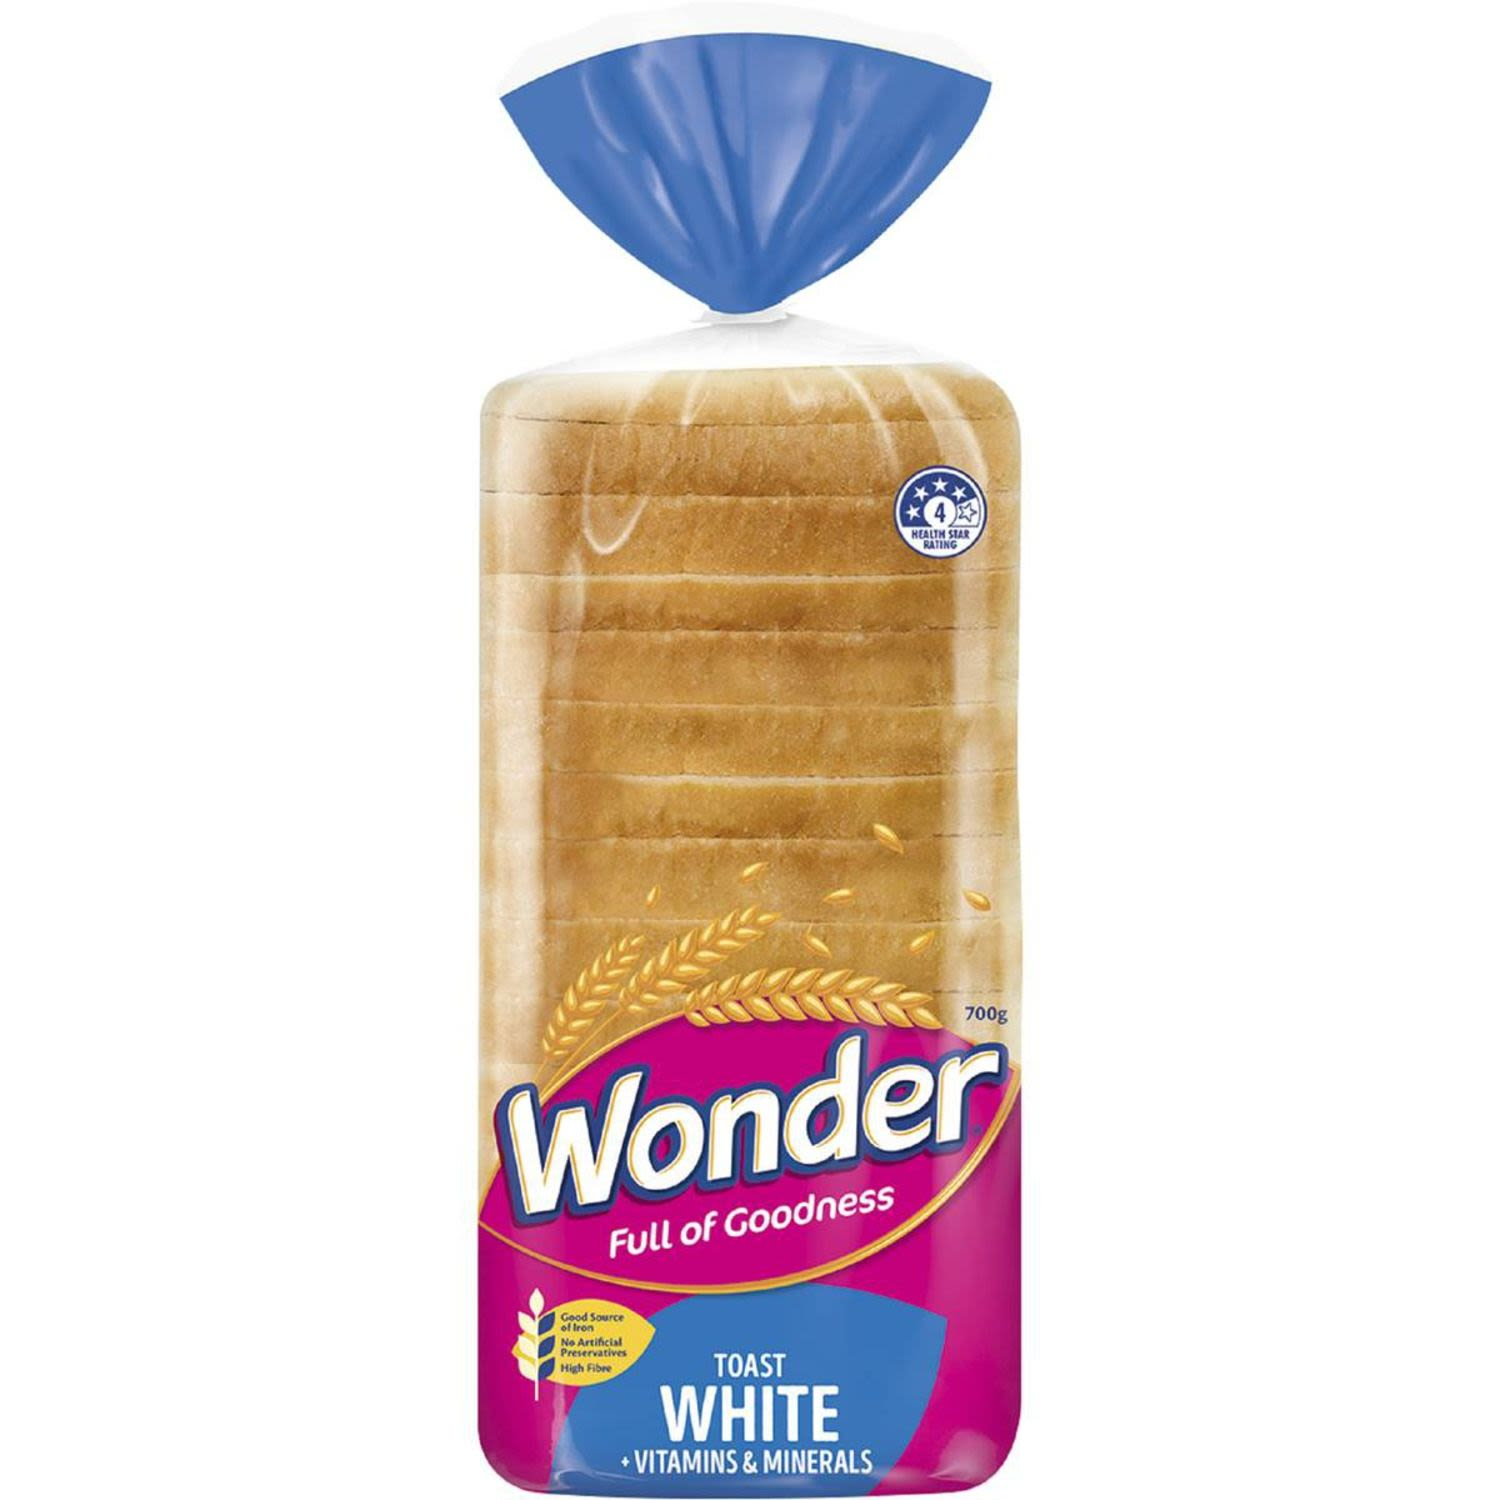 Our softest ever!   Feed their play with our softest ever thick sliced white bread. Packed full of fibre plus essential vitamins and minerlas.  Delicious goodness active kids love.  Niacin B3.  Critical energy release from food. Needed for brain function.  Vitamin E.  Helps kids' growth and development.  Vitamin B6.  Critical for your body to use protein and iron.  Thiamin B1.  Helps produce energy.  Iron.  Helps reduce tiredness and fatigue.  Zinc.  Necessary for a healthy immune system.  Protein.  Helps grow & maintain muscles. Critical for growth and development of kids' bones.  - No added sugar.  - High Fibre.  - No Artificial Preservatives.